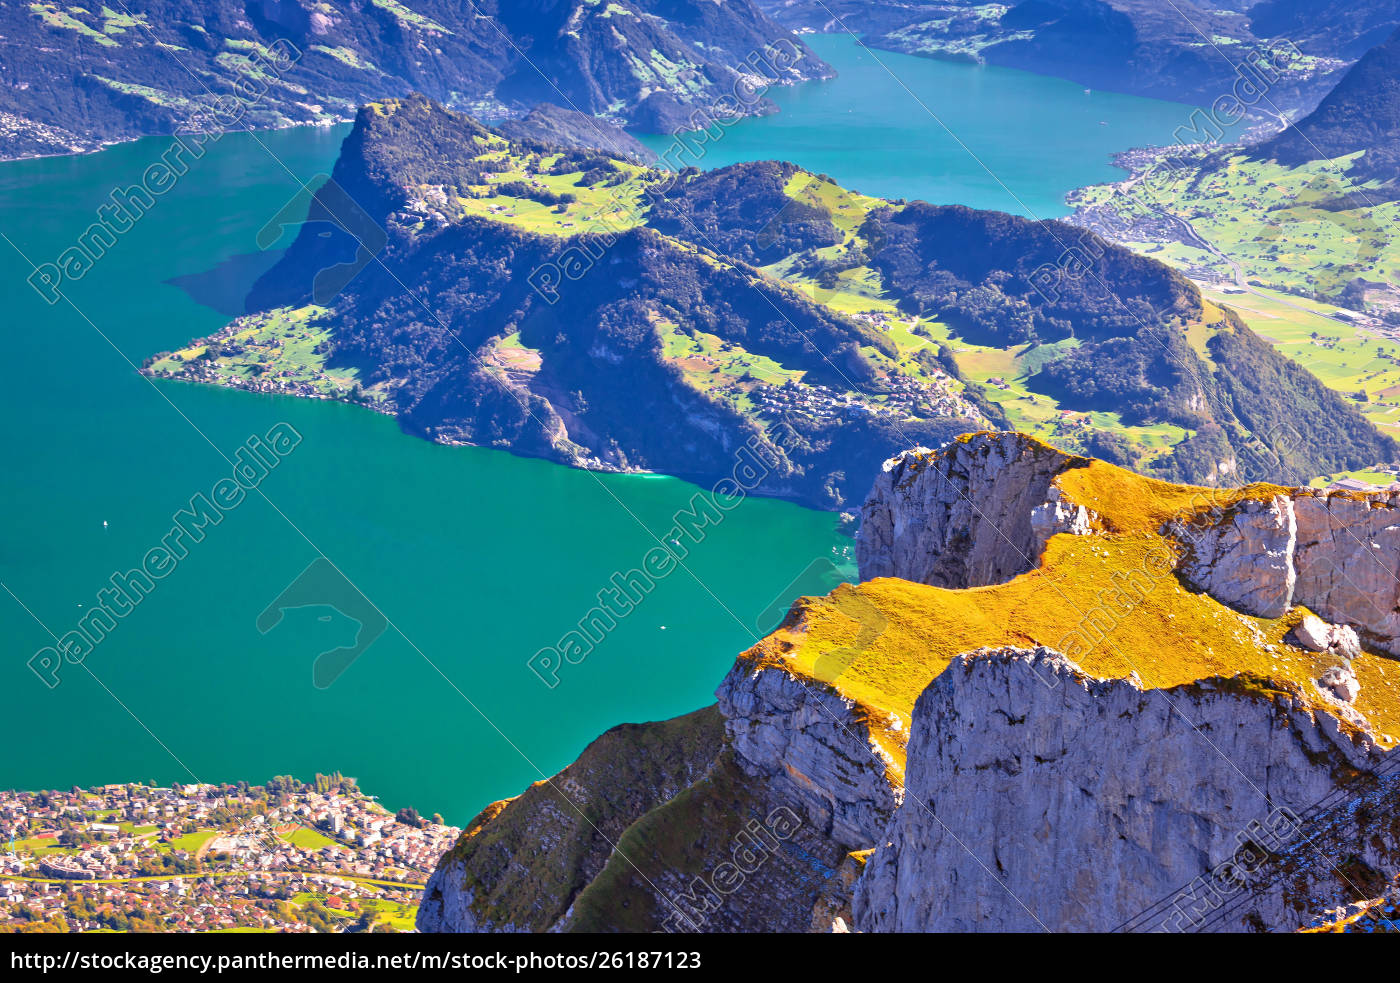 Stockfoto 26187123 - Lake Luzern and Alps mountain peaks aerial view from  Mount